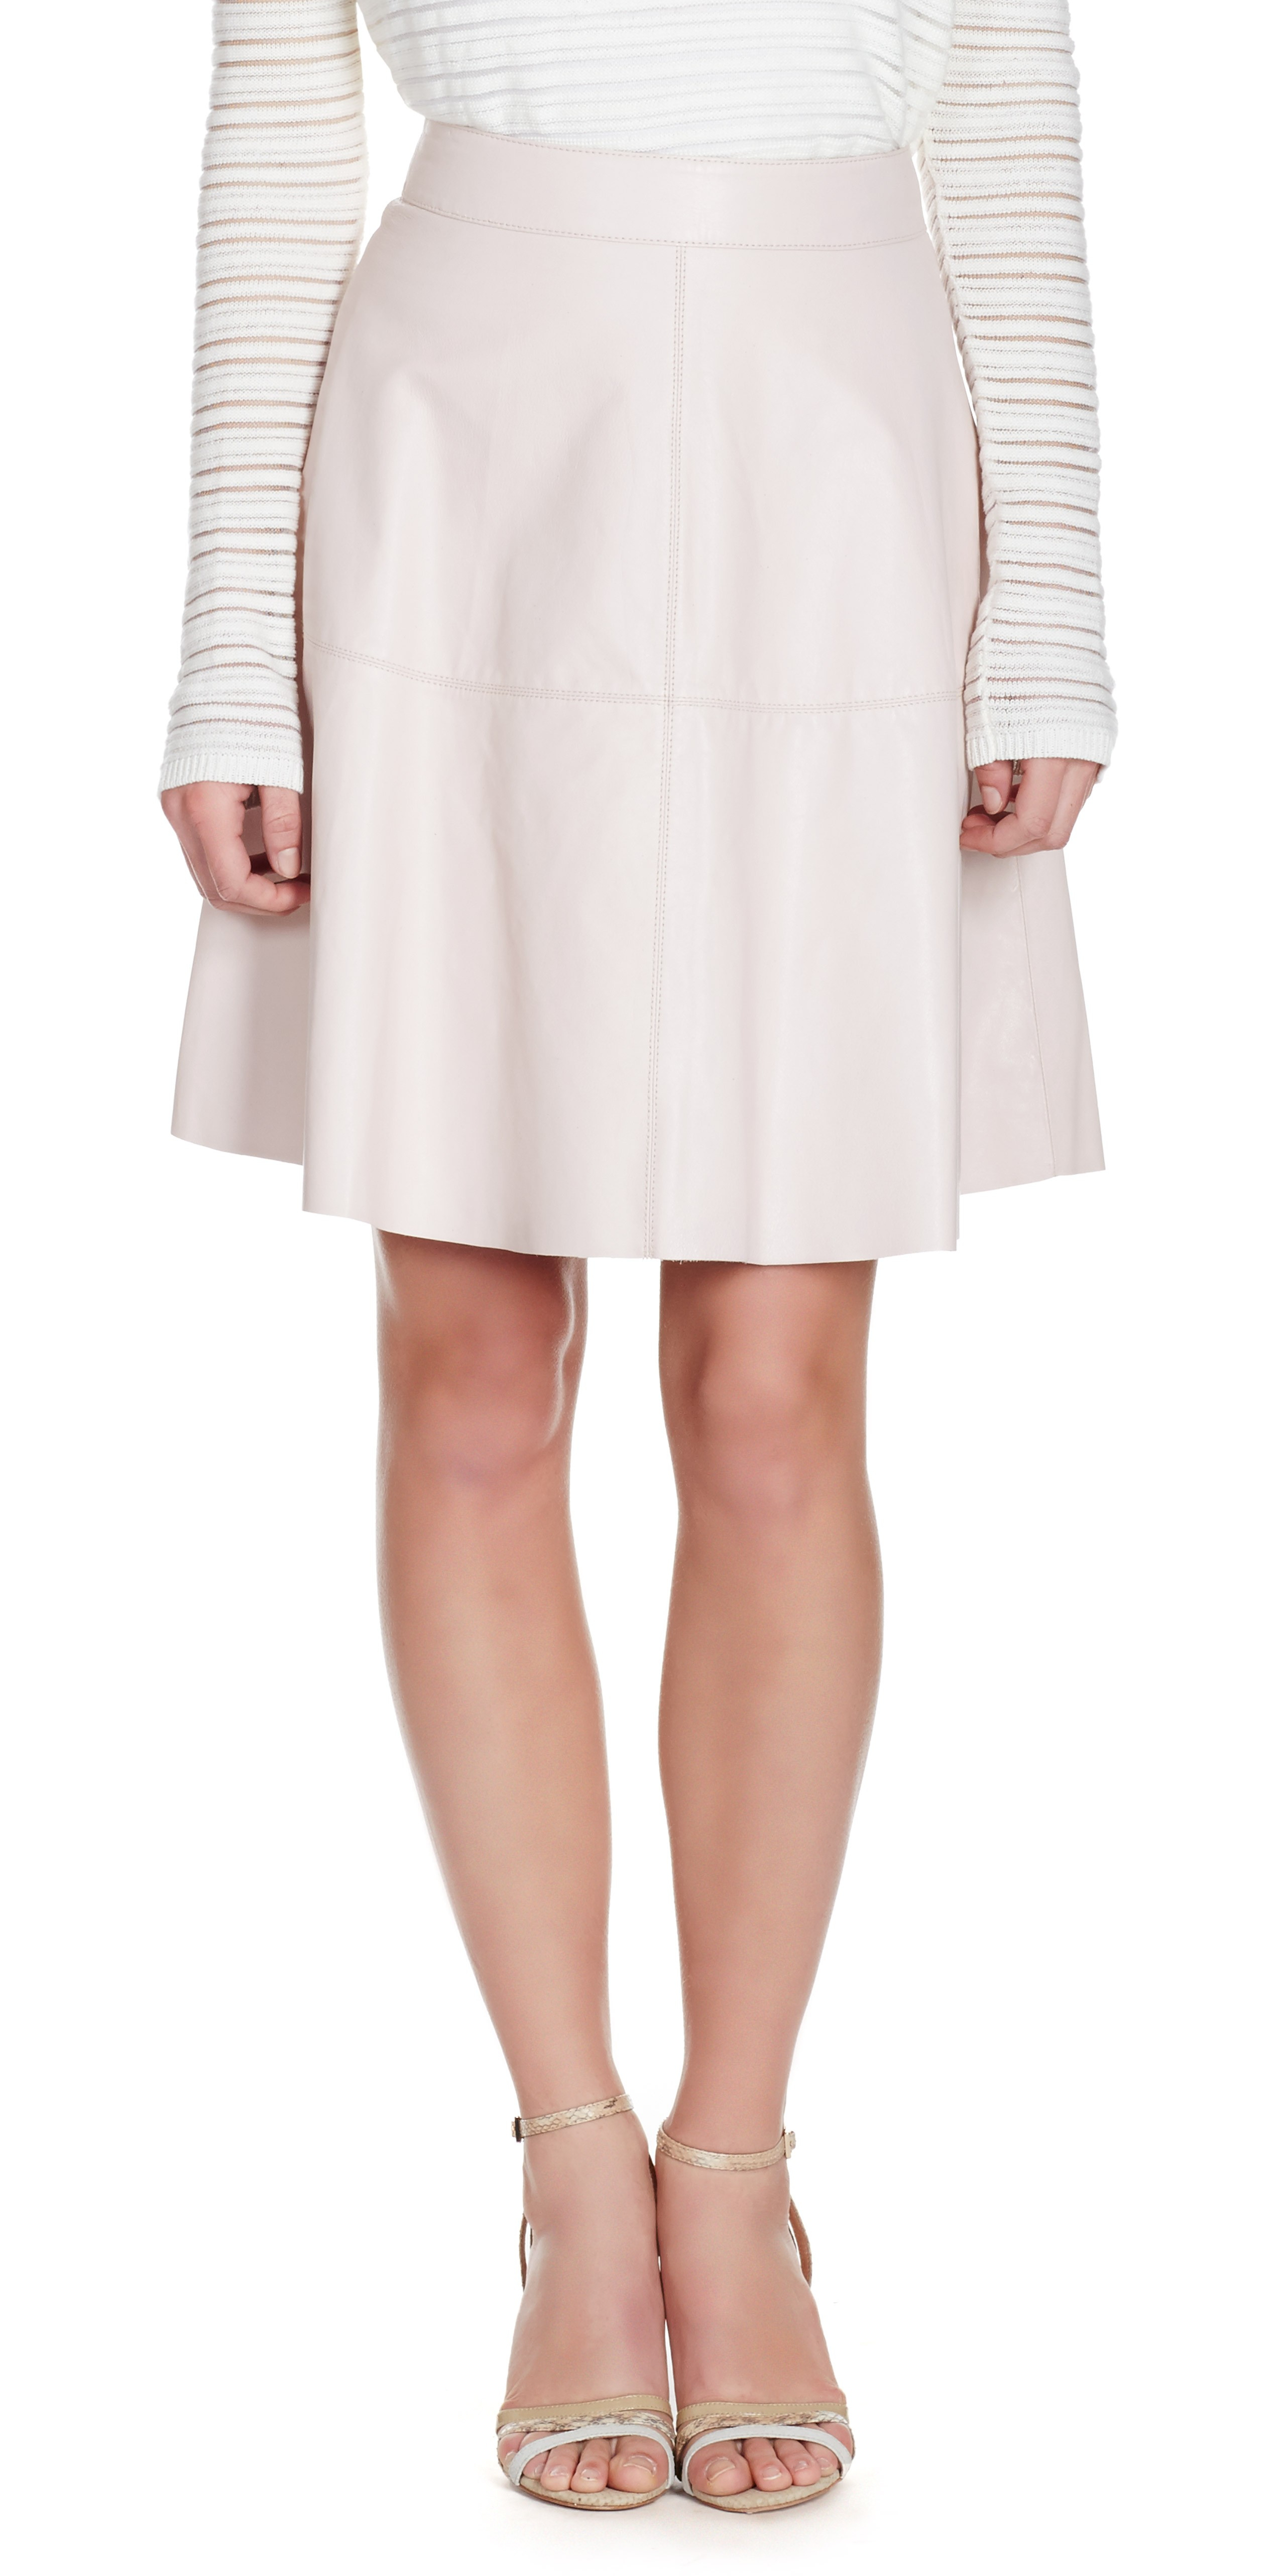 8be1d5f117 Lyst - Joie Decollete Skirt in Pink